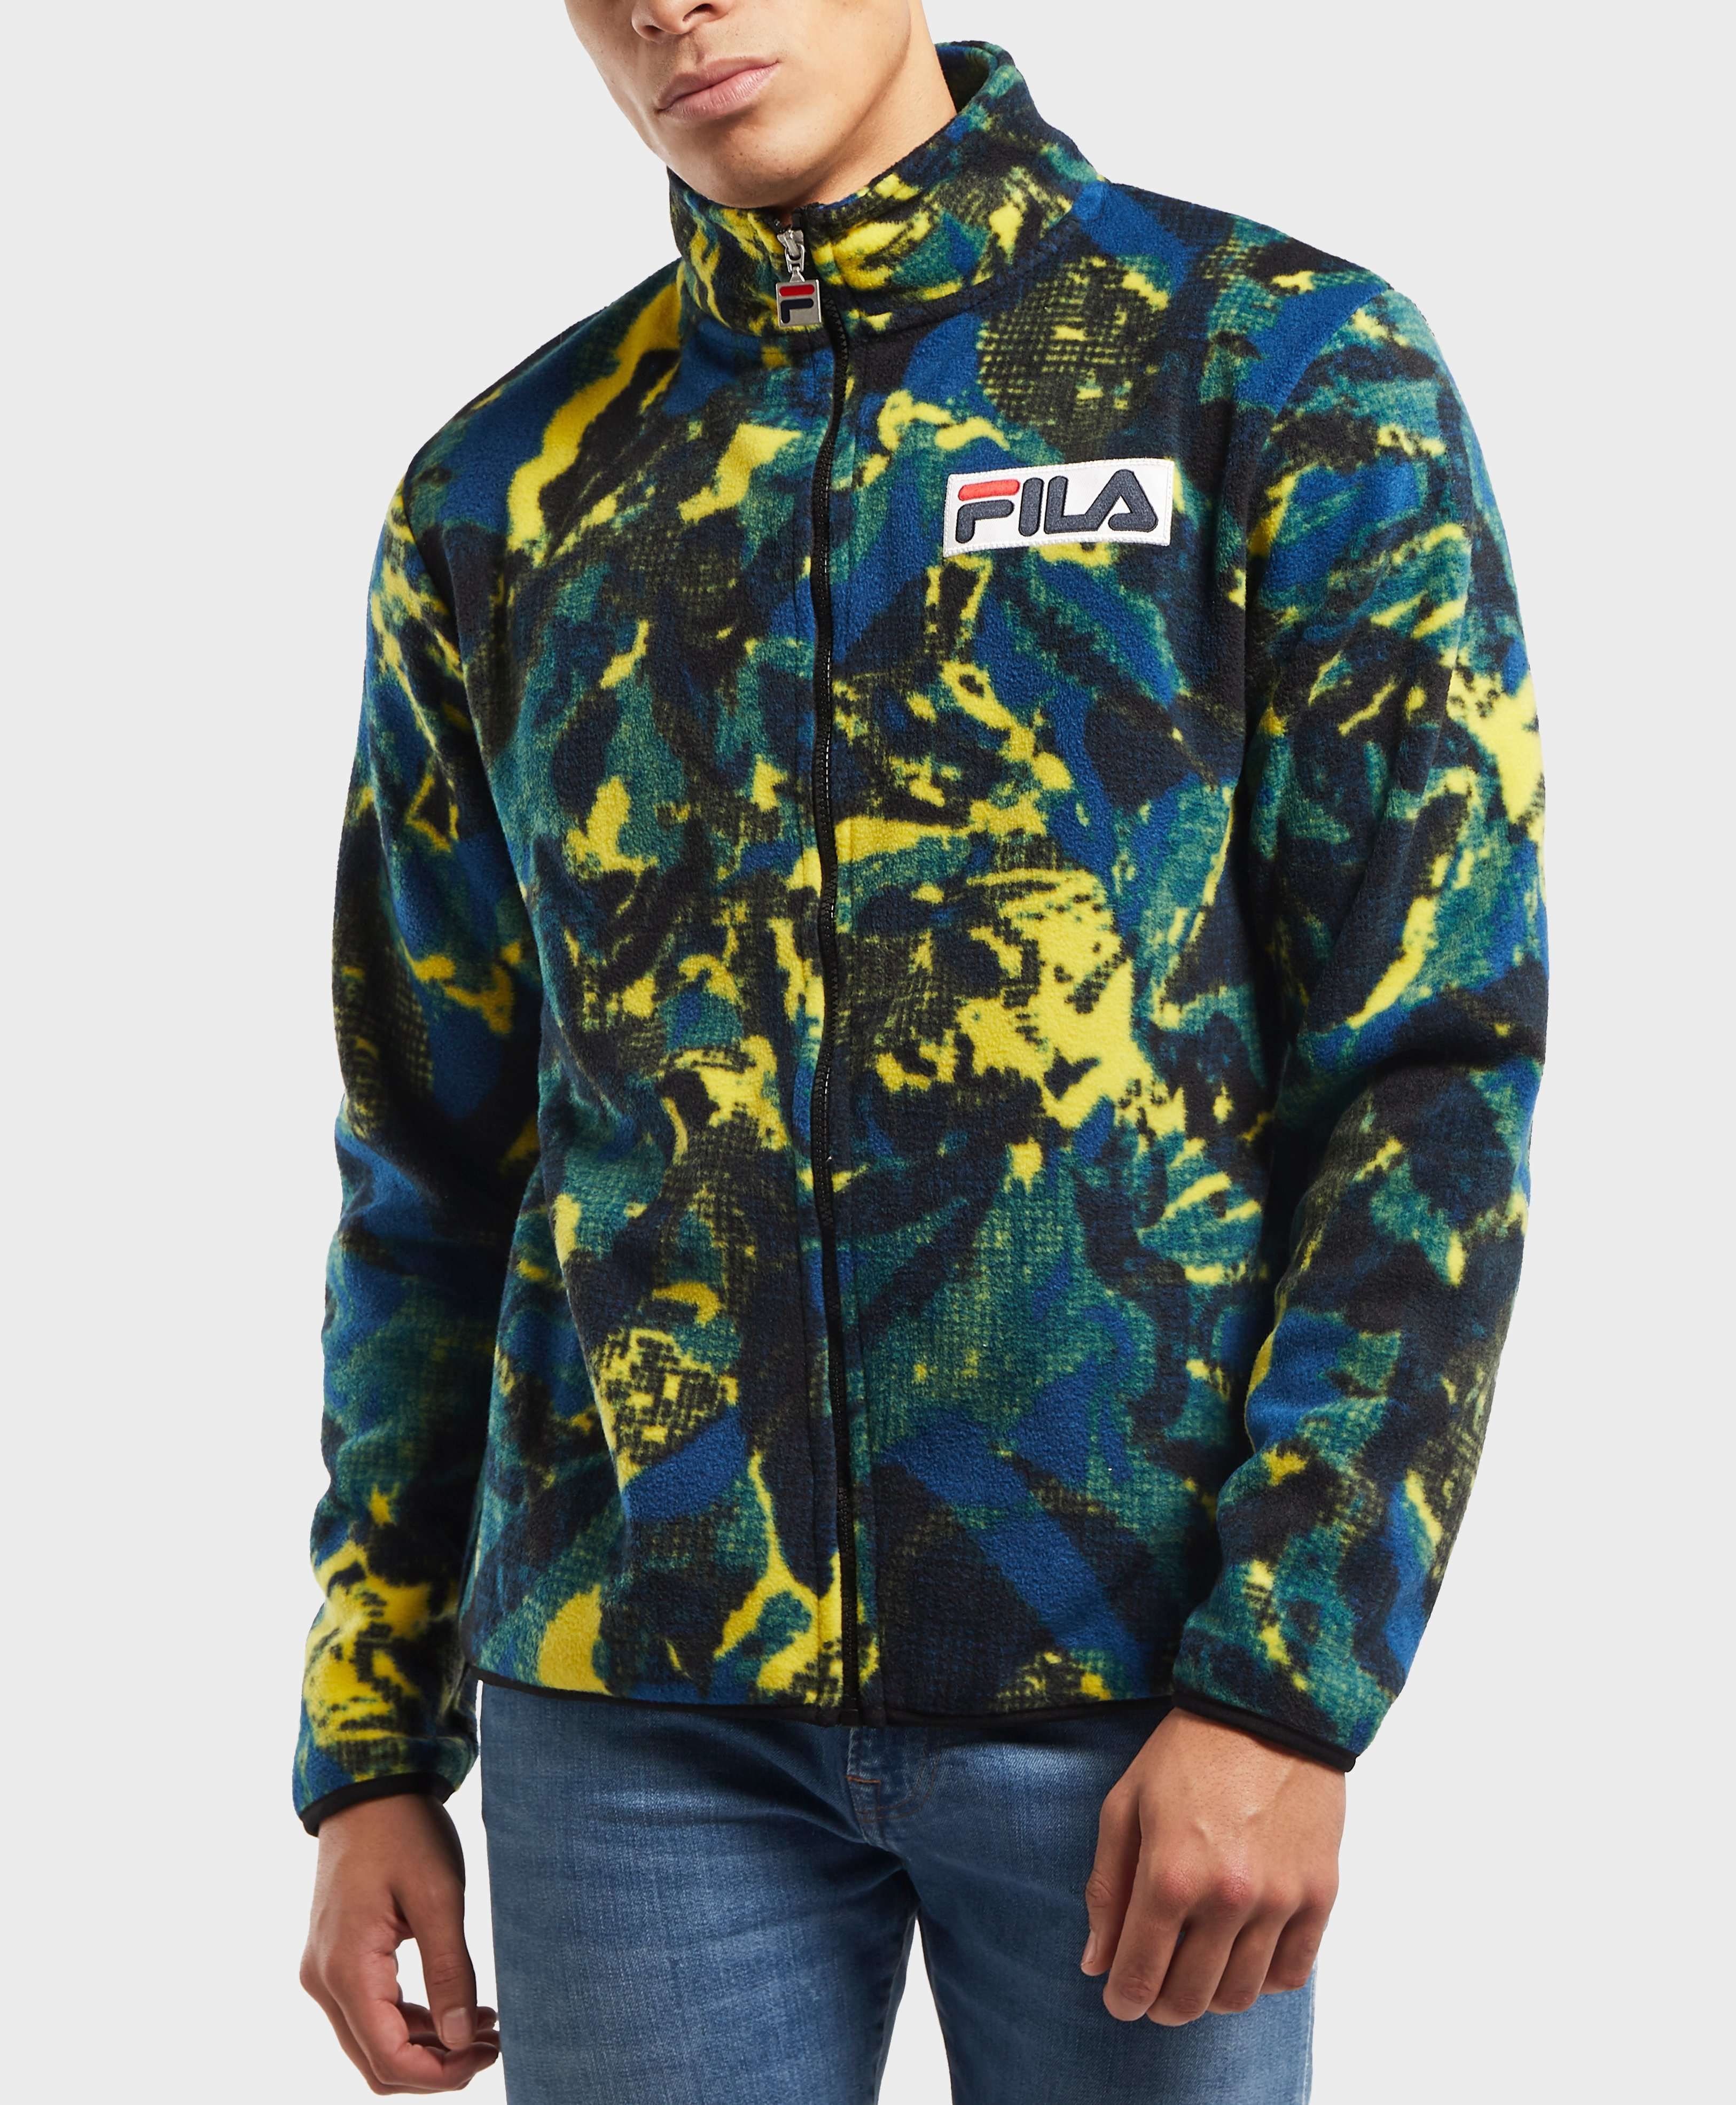 582c50bfadc1 Fila Polsa Print Fleece - scotts supply the best clothing, latest footwear  and essential accessories from the biggest names in the menswear game.